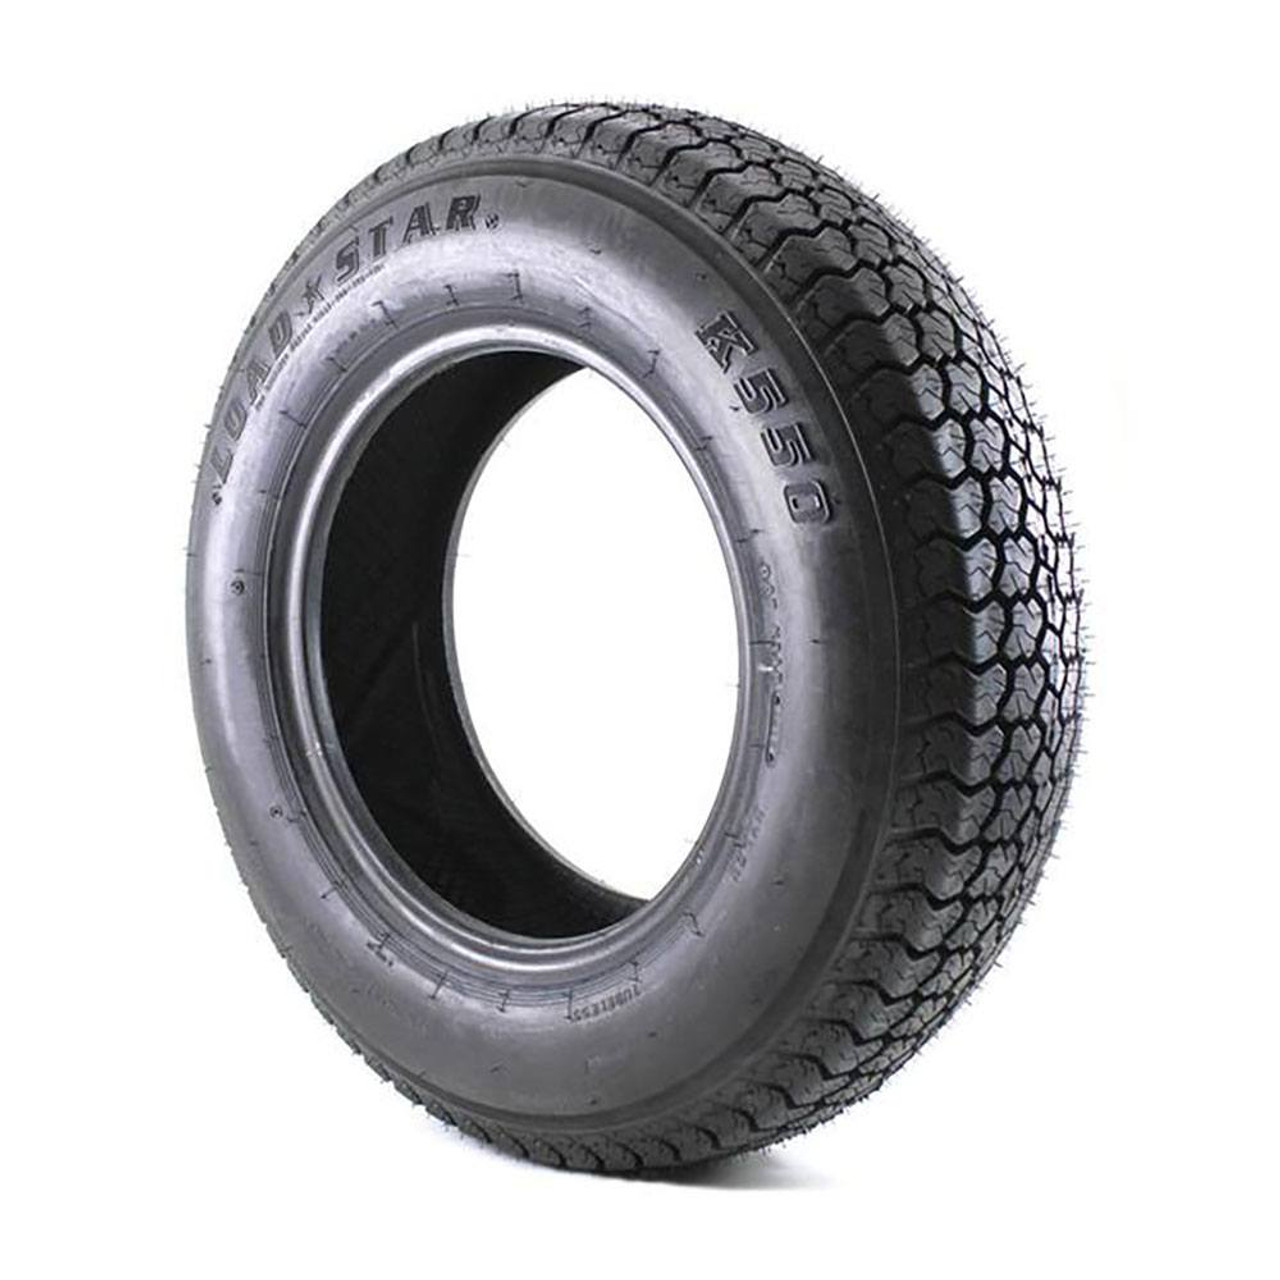 ST175/80D13 Load Range C Bias Ply Trailer Tire - Kenda Loadstar